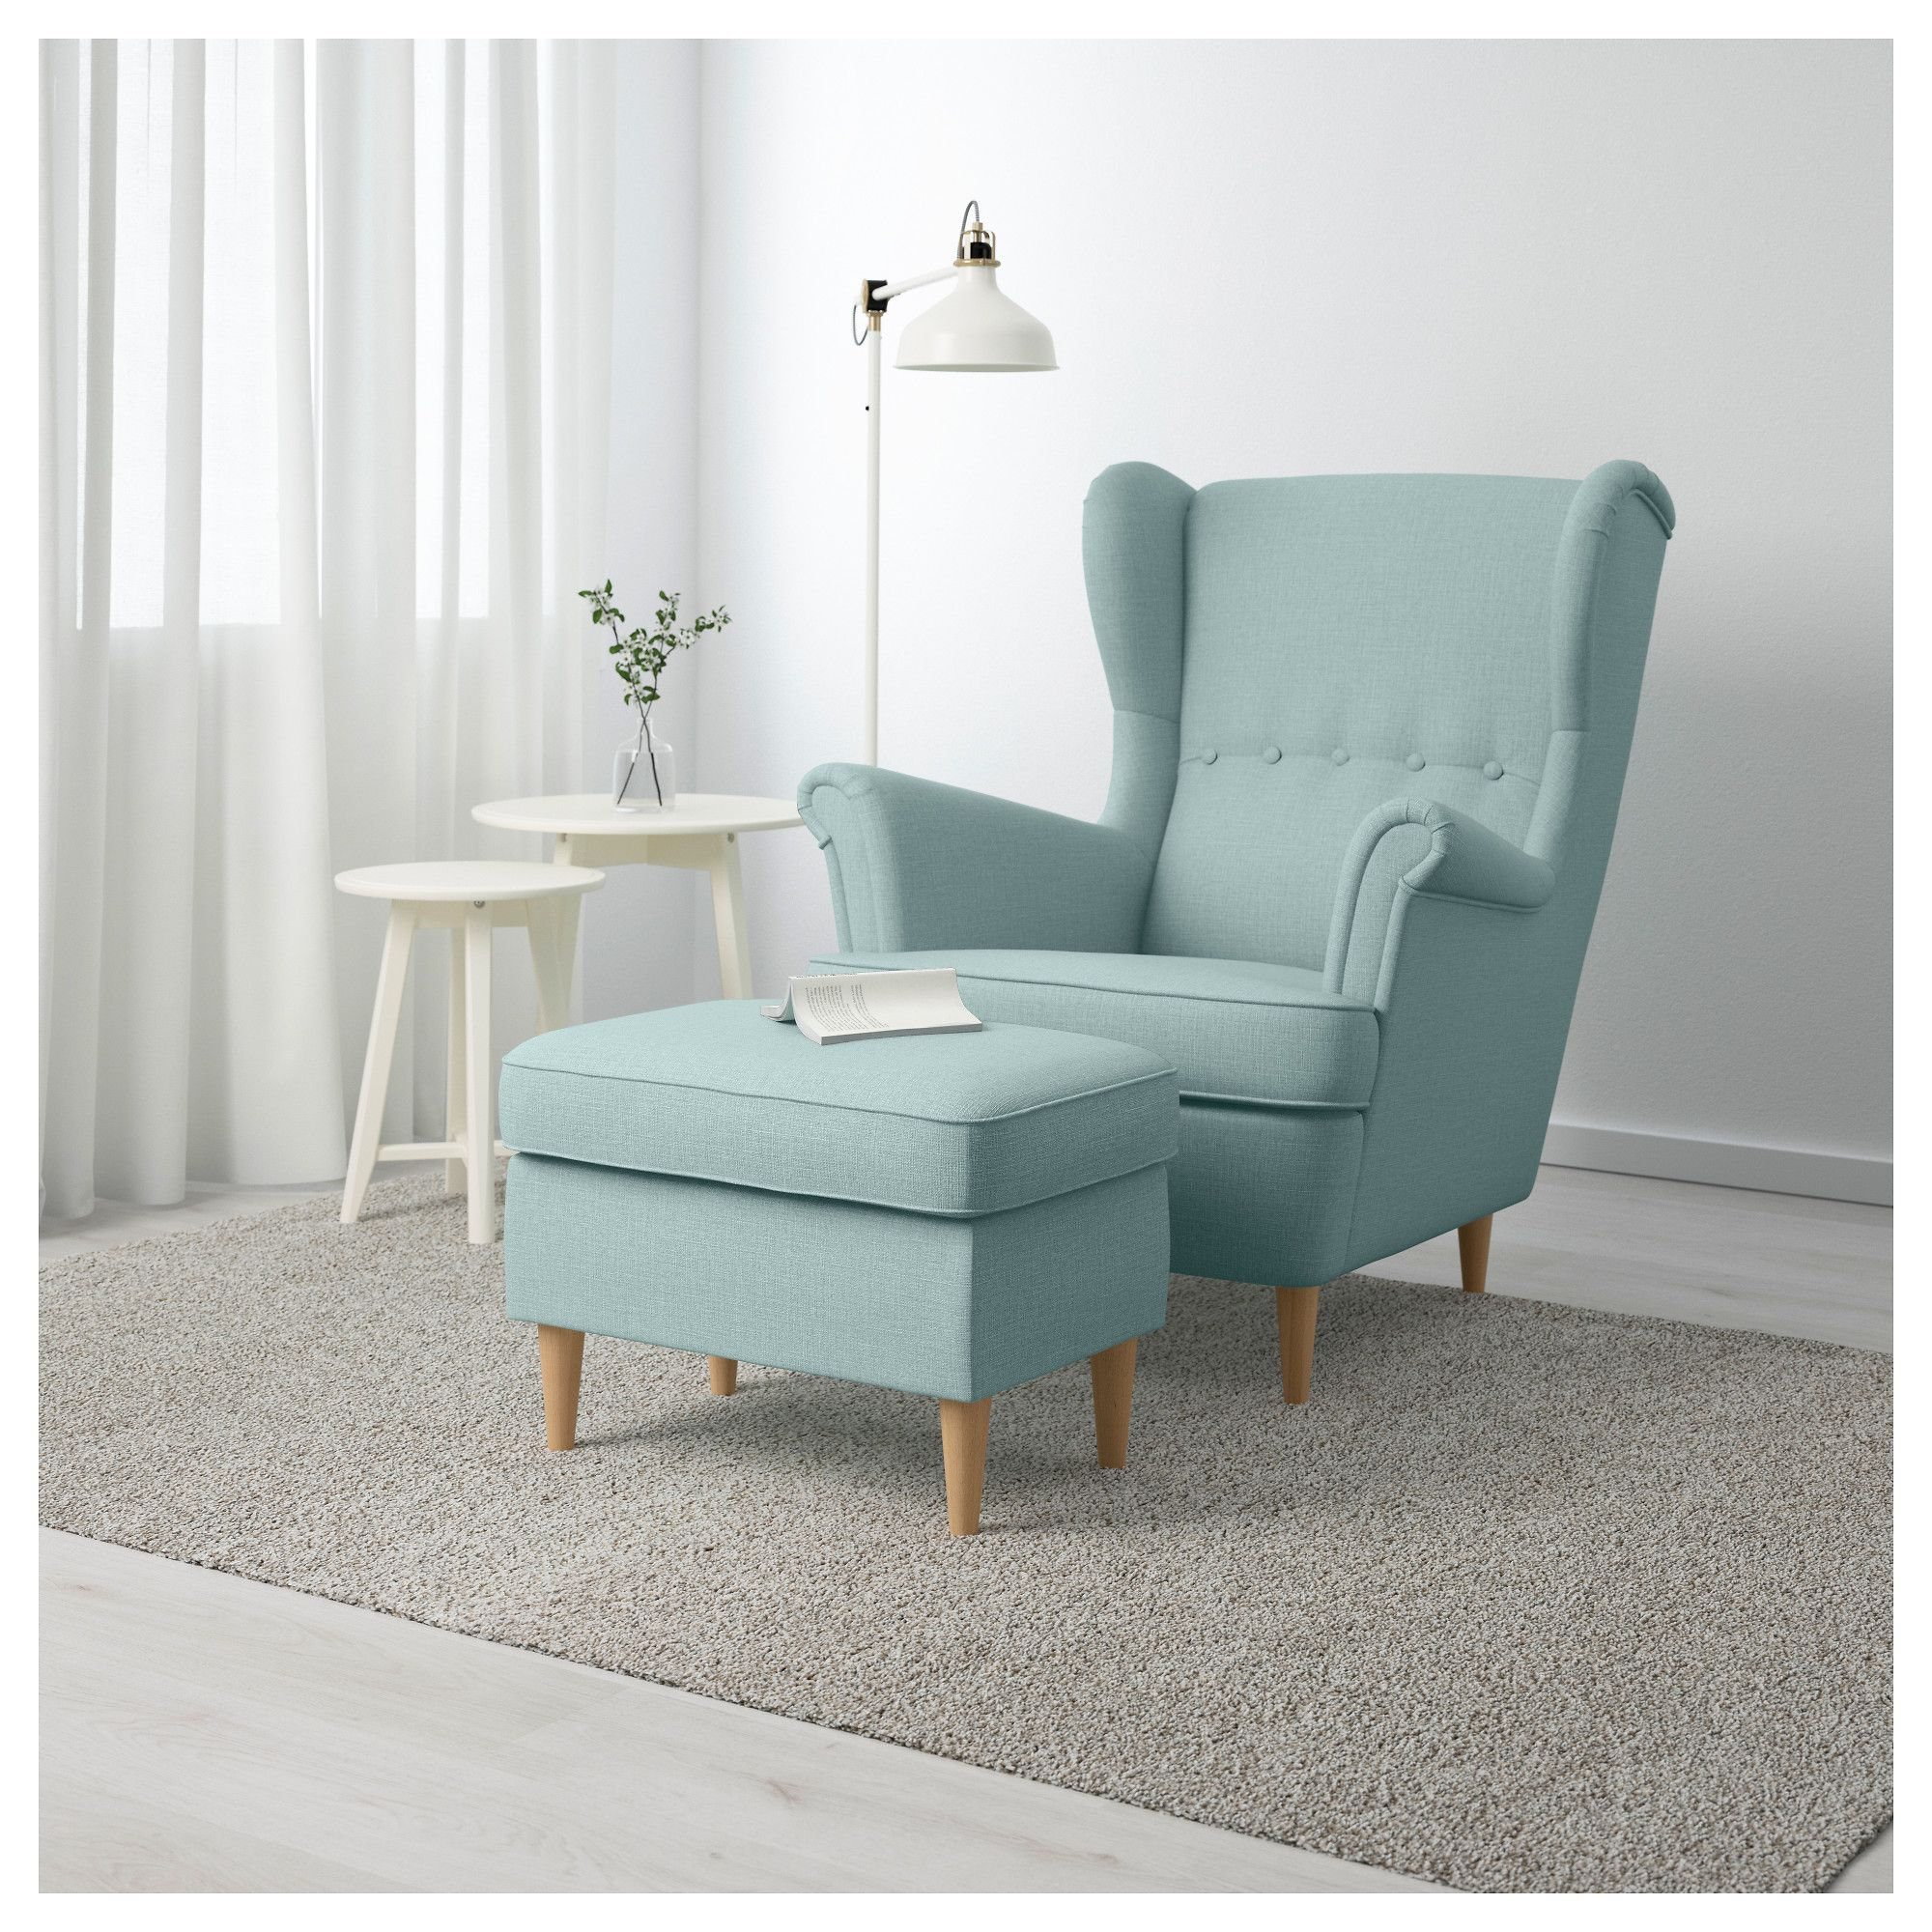 Strandmon Ikea Sofa Strandmon Ottoman Skiftebo Light Turquoise Living